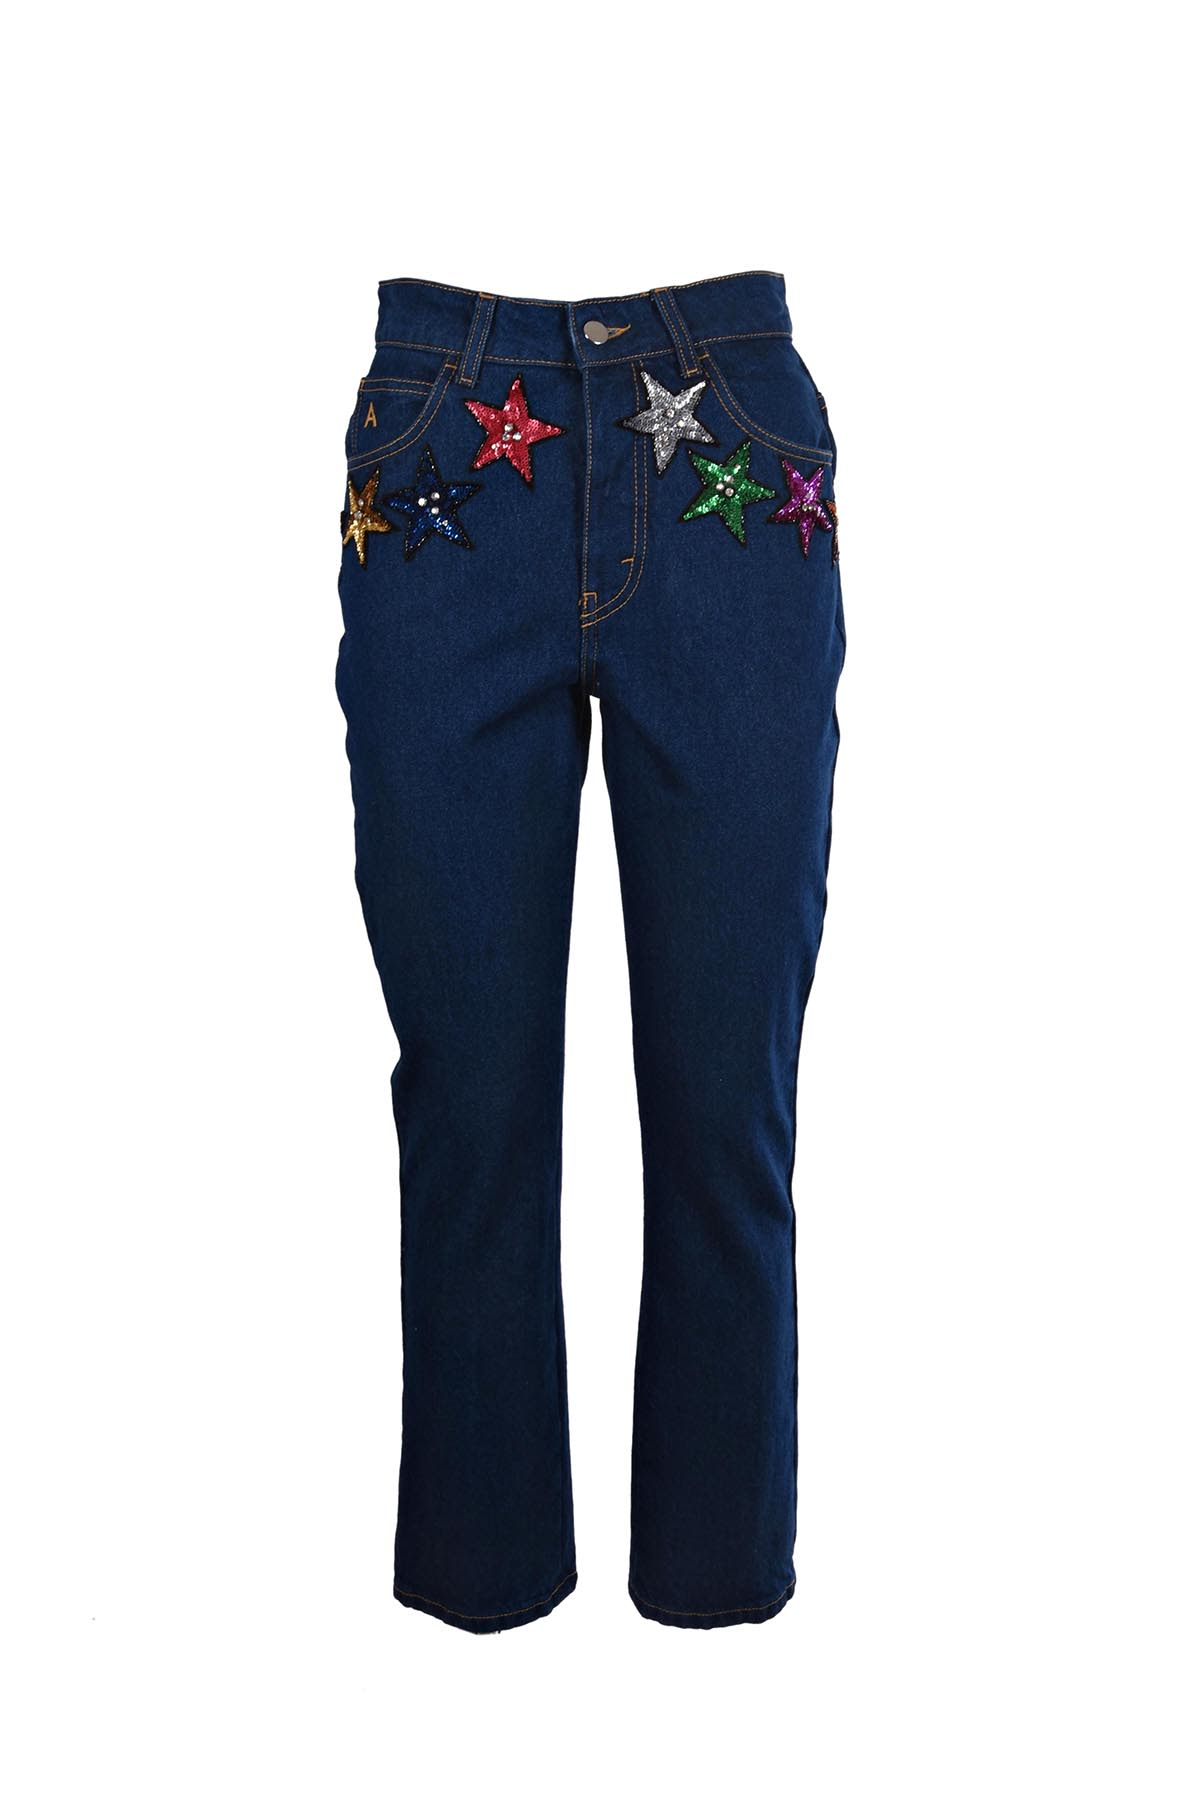 ATTICO Sequin Stars High Waisted Cropped Jeans